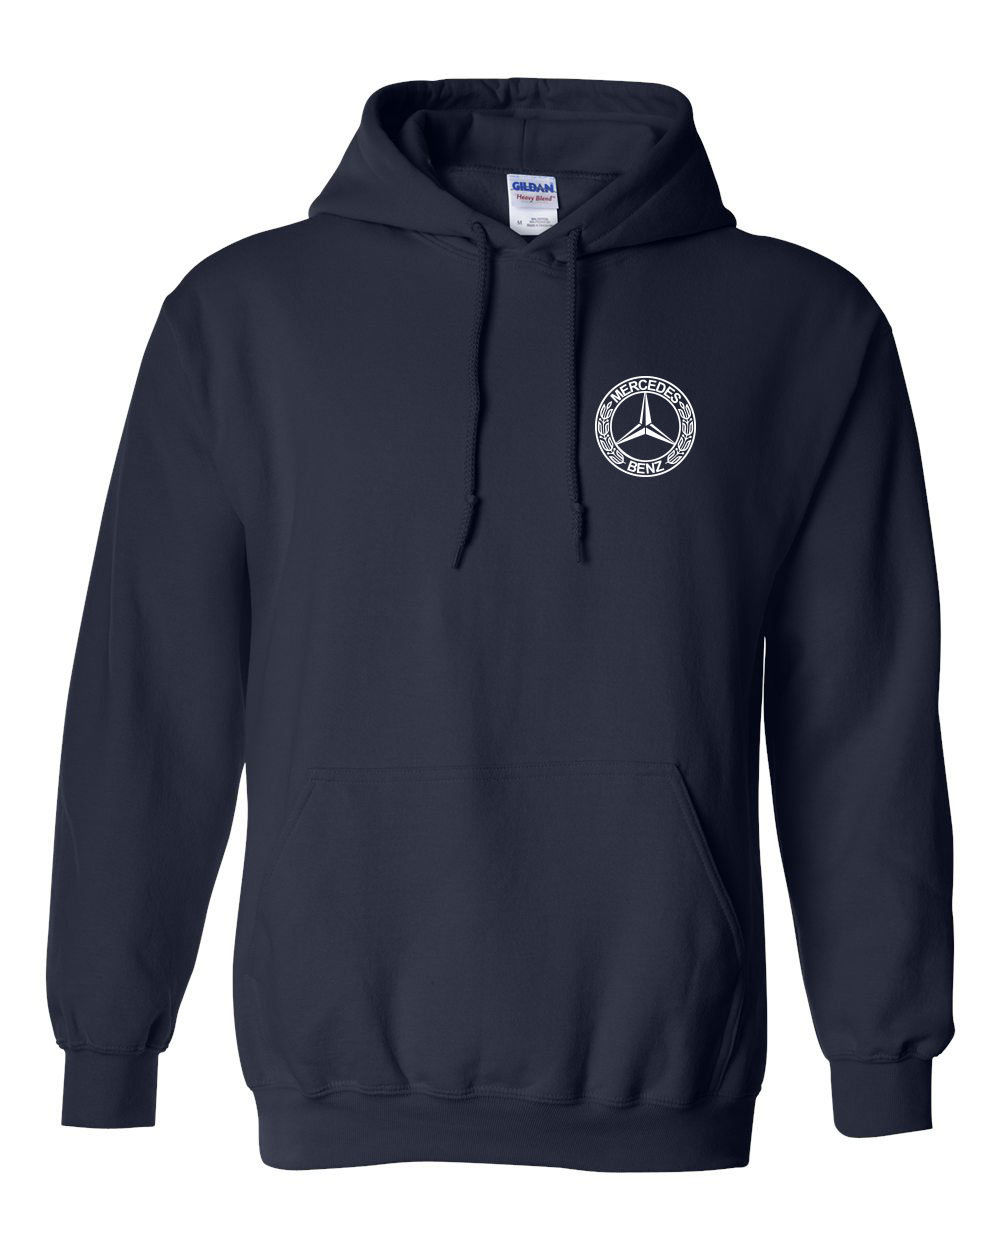 Navy hooded sweater her sweater for Mercedes benz sweater